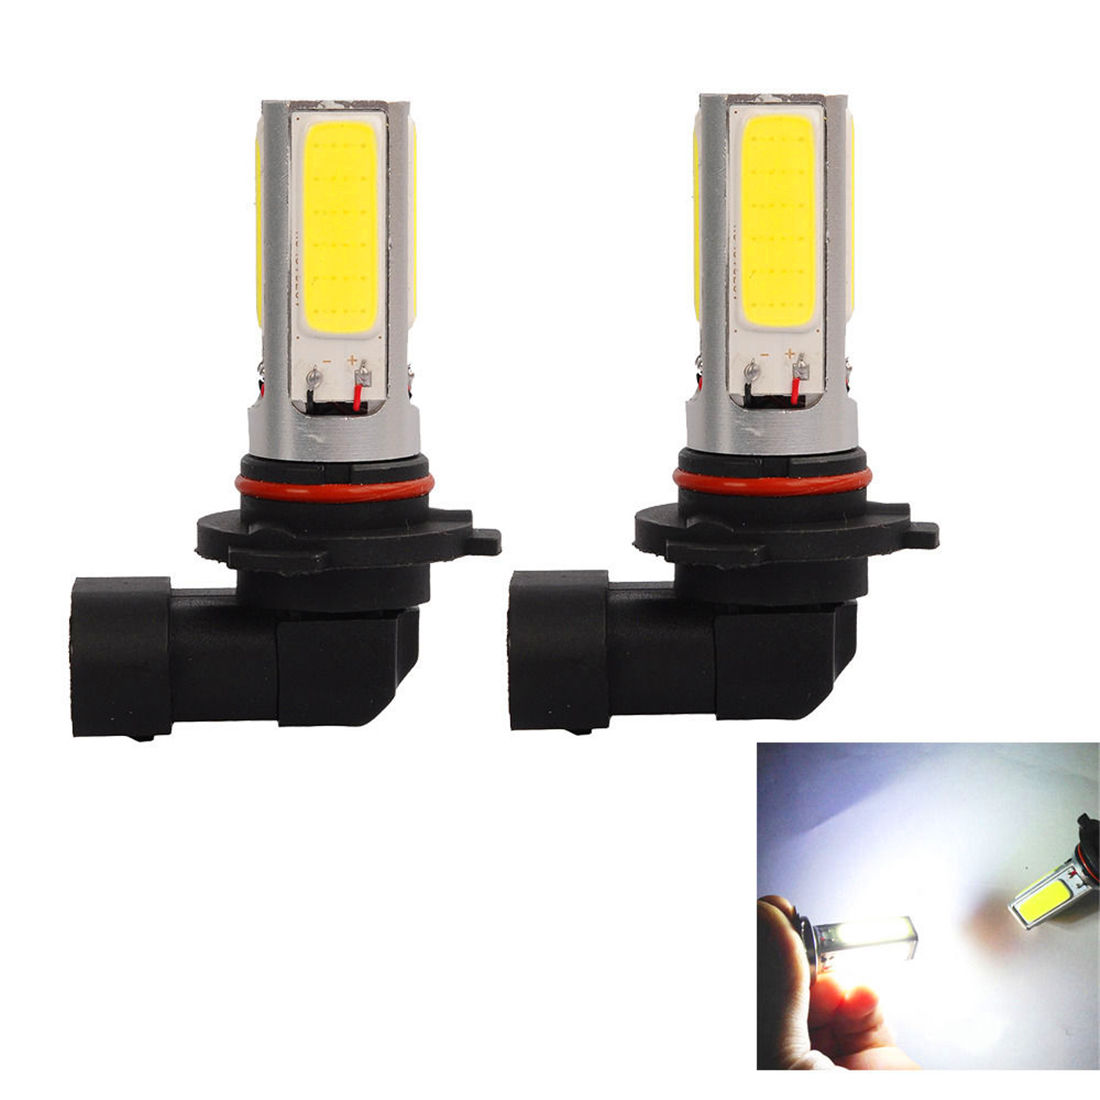 9140 Fog Light Bulb: 2Pcs 9005 HB3 20W Led Fog Light White Car Truck 9145 9140 Lamp Bulb 12V(,Lighting